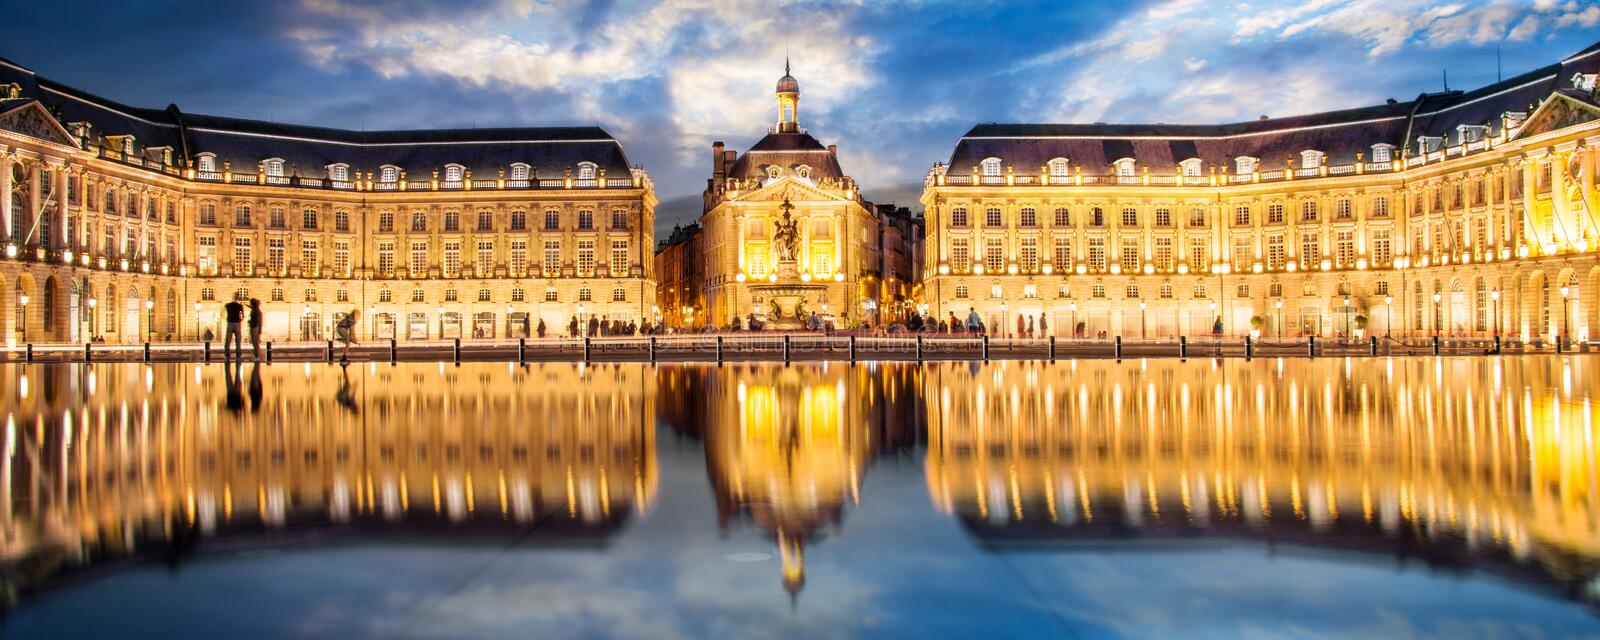 Download Place La Bourse In Bordeaux, The Water Mirror By Night France Stock Photo - Image of heritage, panorama: 120380698